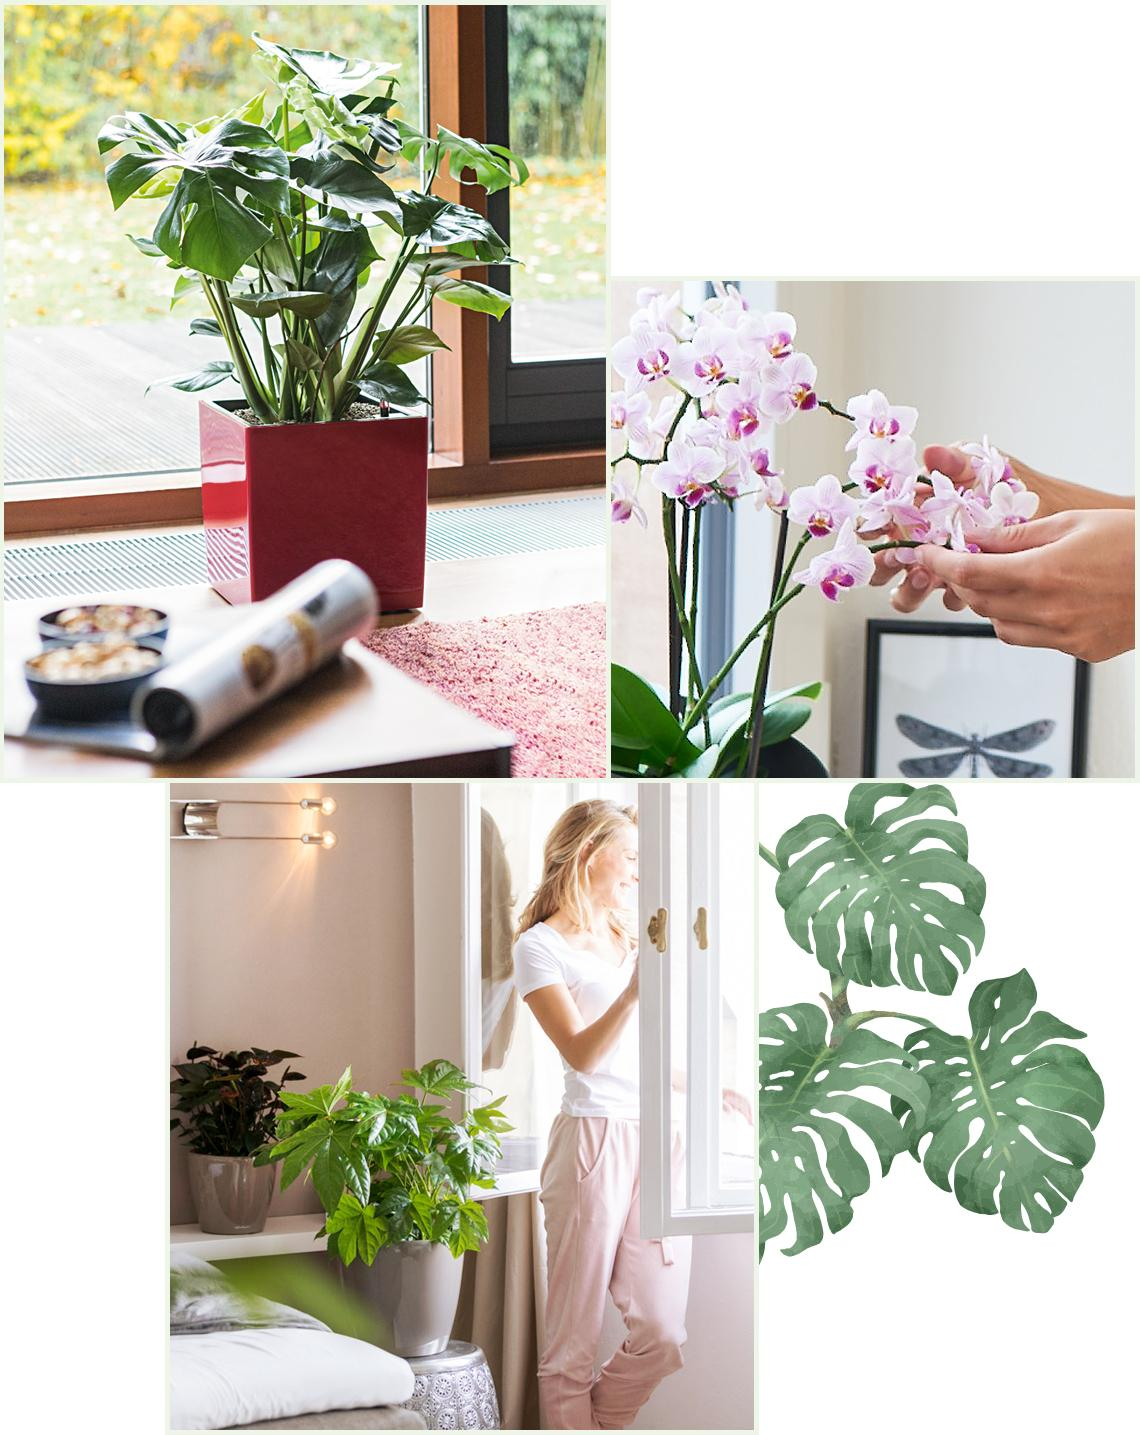 le_tw-indoorplants_abstauben_1